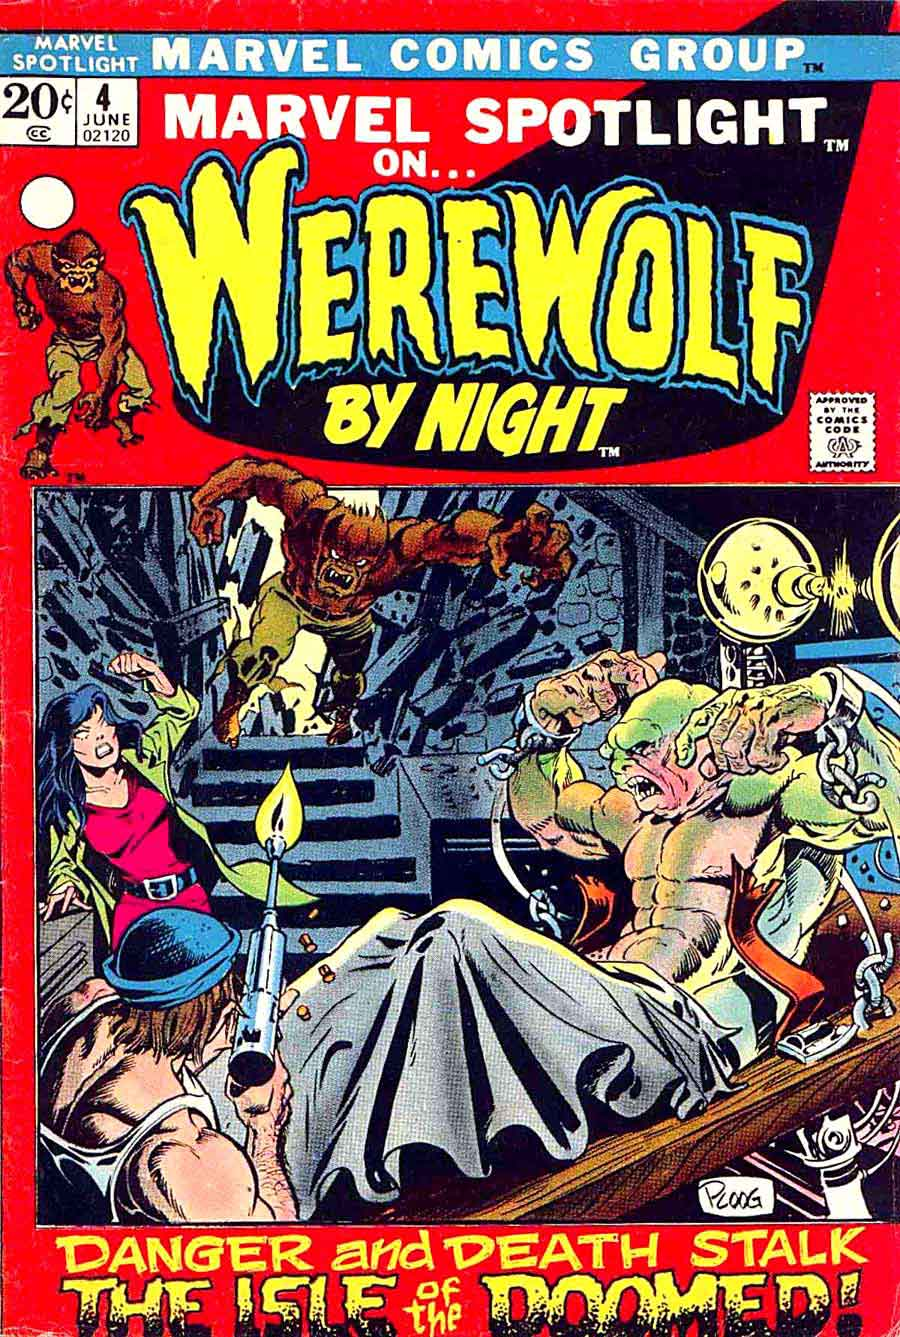 Marvel Spotlight v1 #4 Werewolf by Night marvel comic book cover art by Mike Ploog